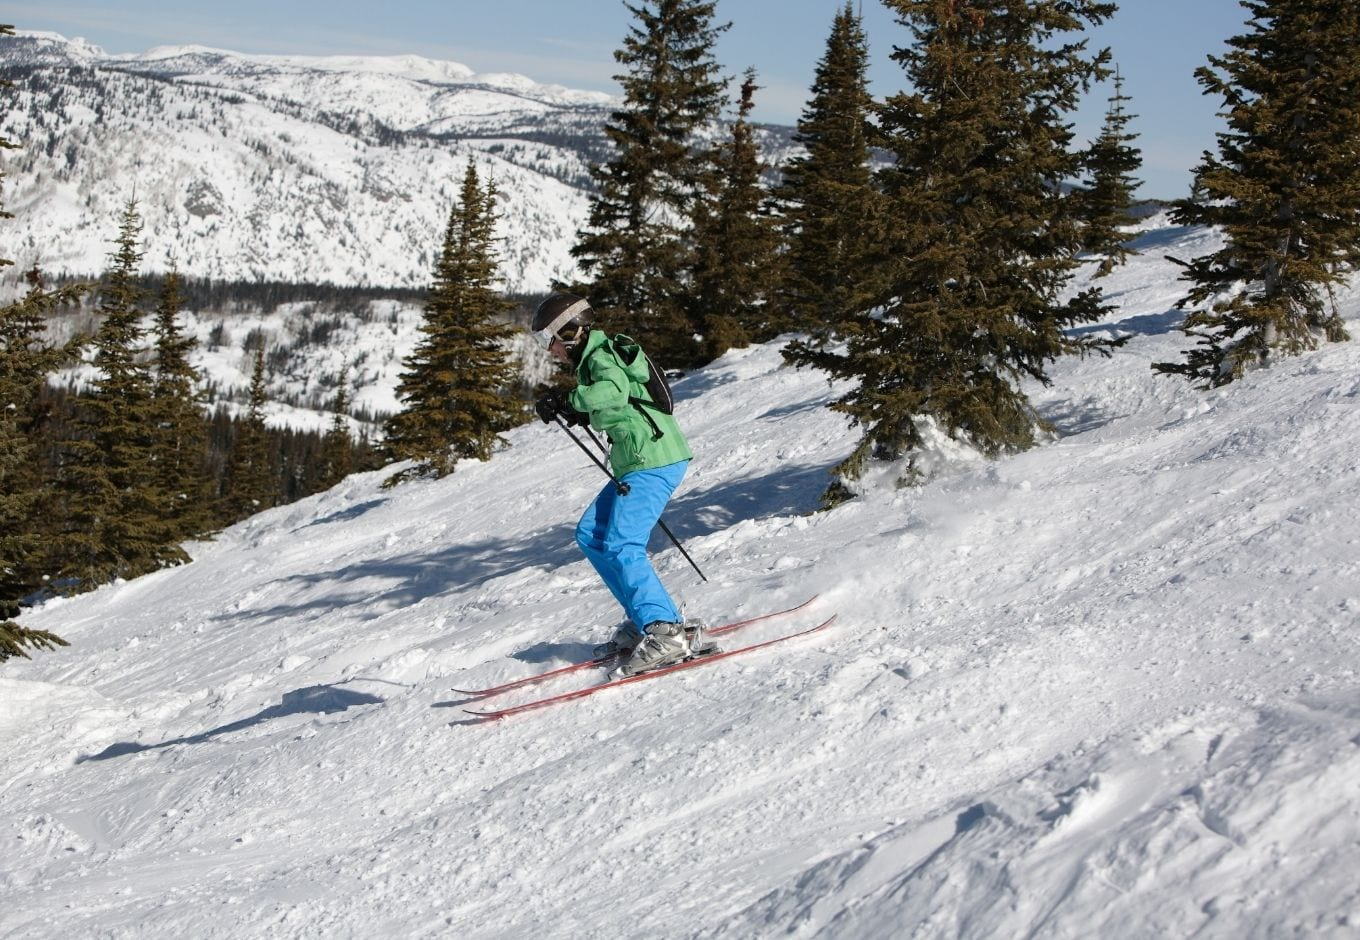 Person downhill skiing at the Steamboat Resort, Colorado.